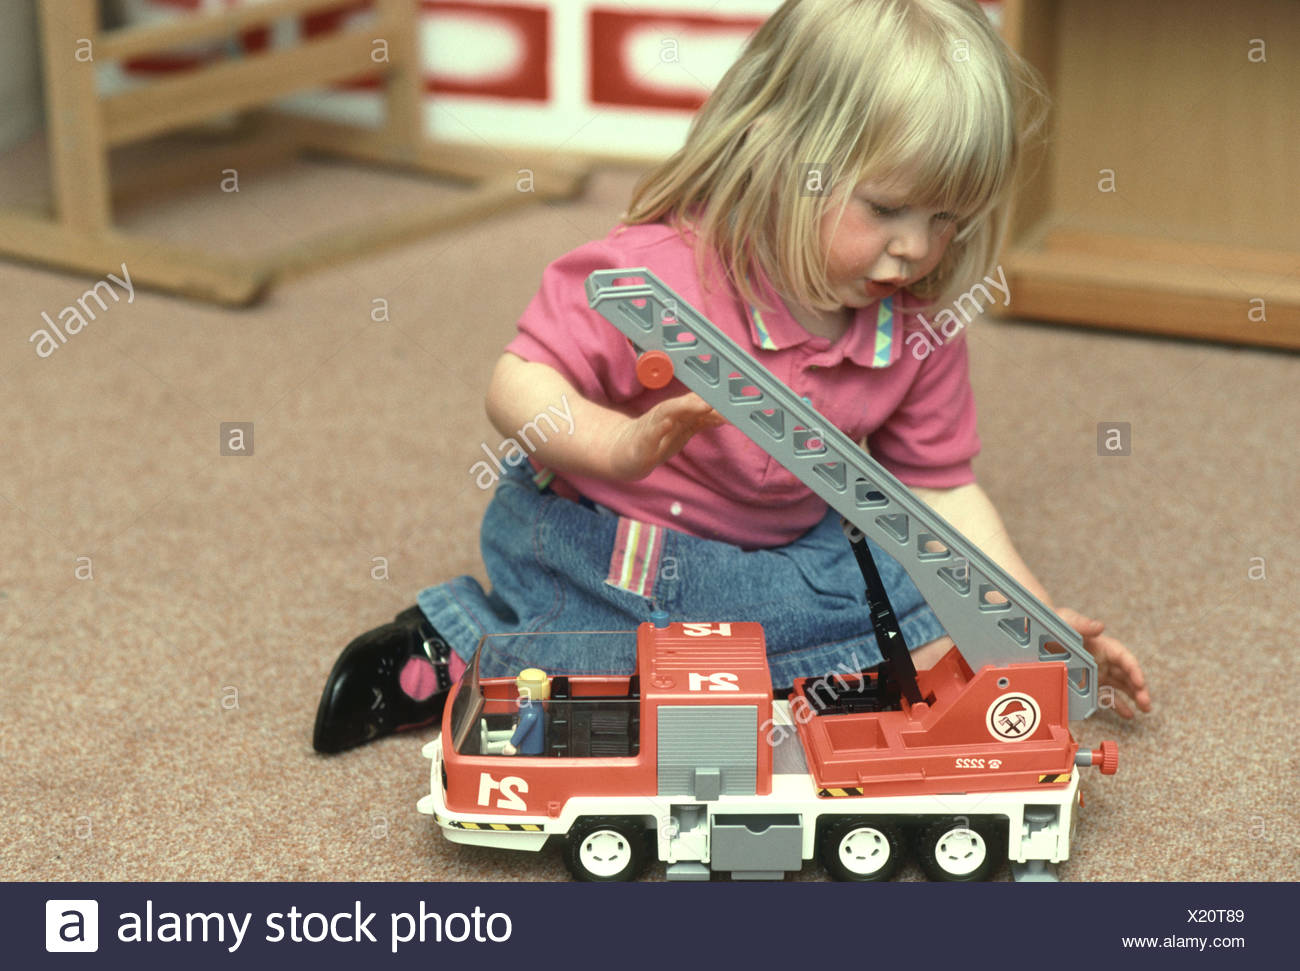 nursery school girl playing with a toy fire truck - Stock Image